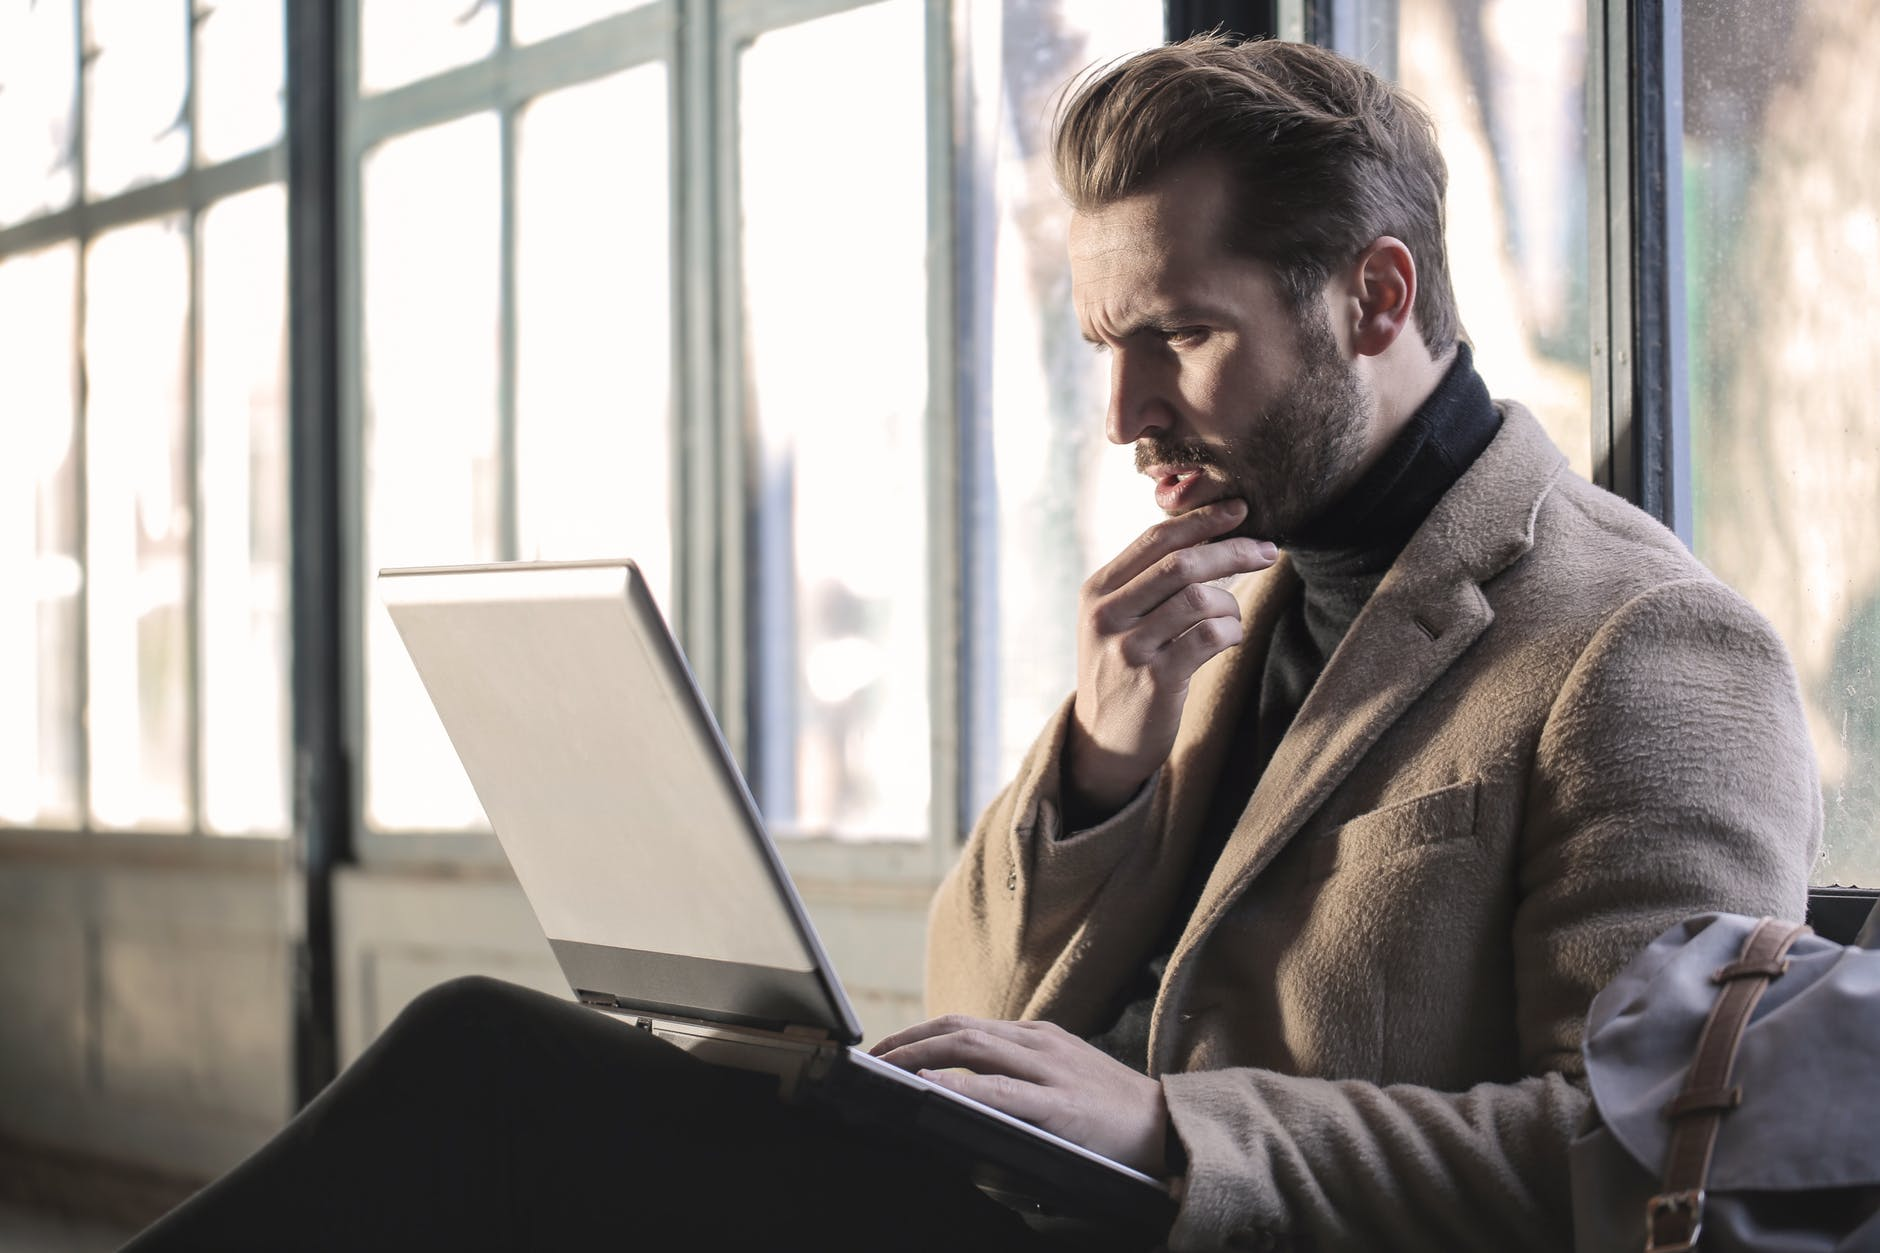 man wearing brown jacket and using grey laptop